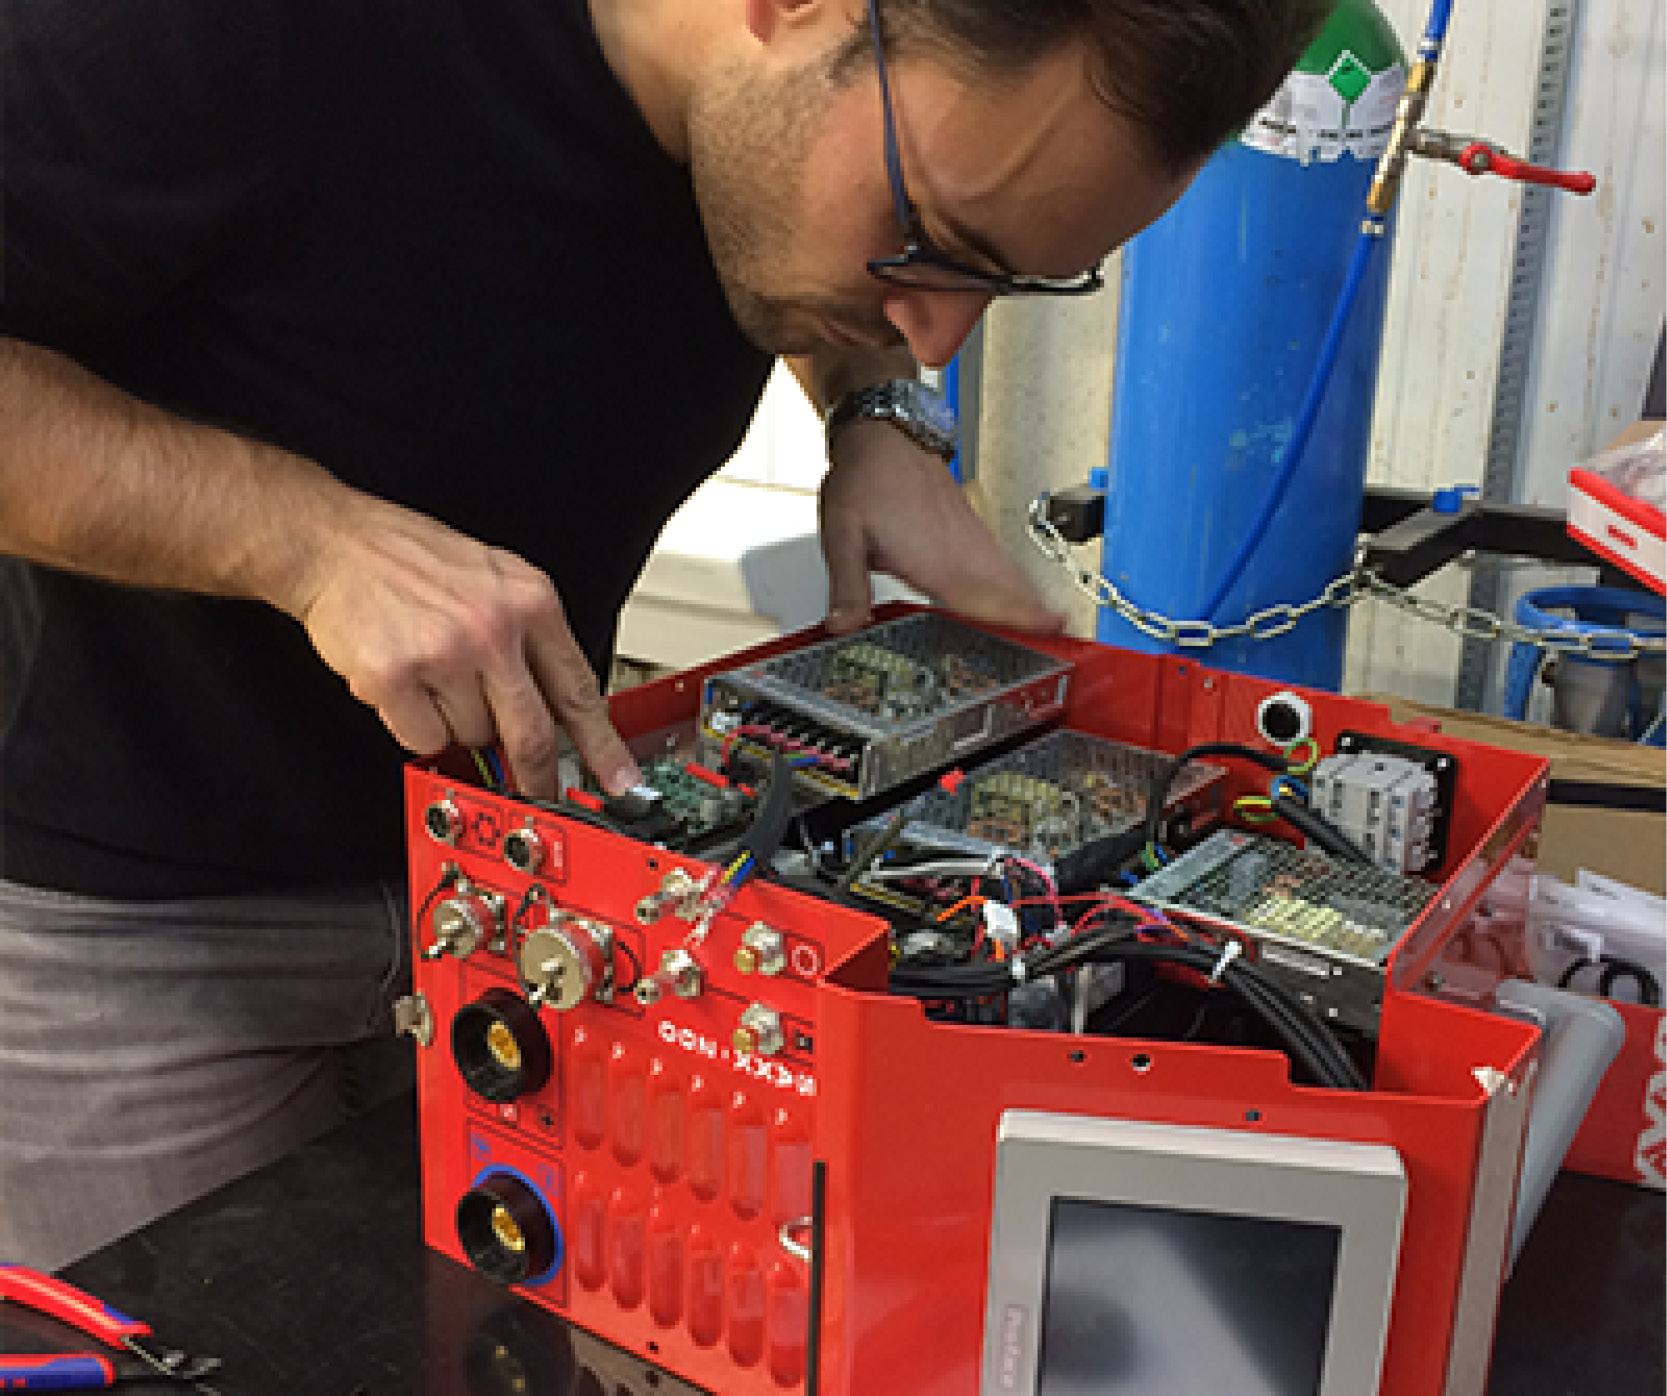 How many axes on a welding power supply?